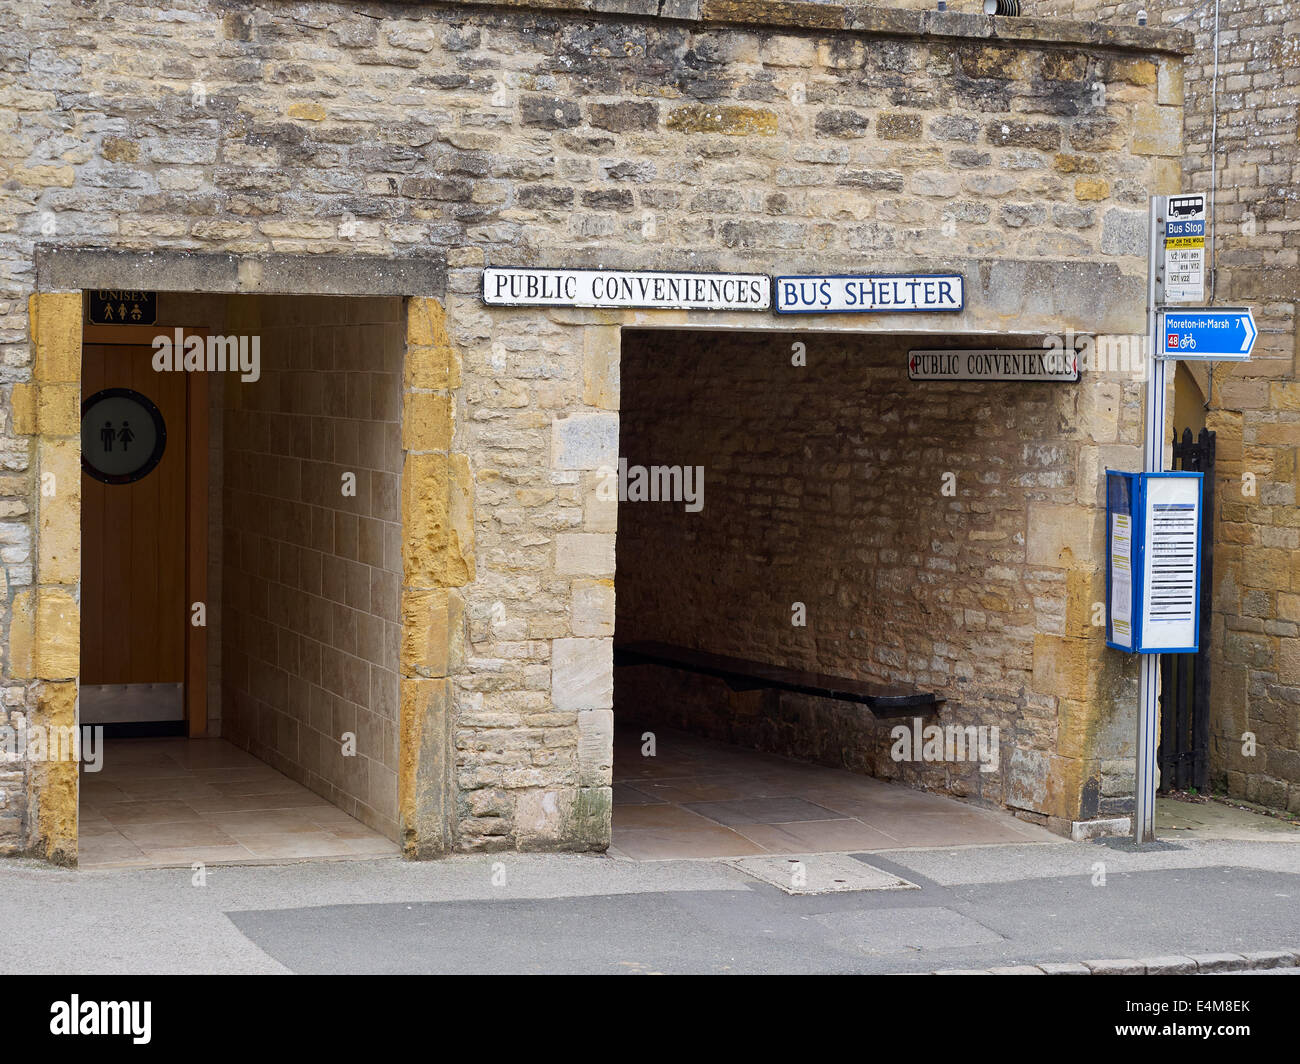 Public Conveniences and Bus Shelter, Stow-on-the-Wold, Gloucestershire - Stock Image